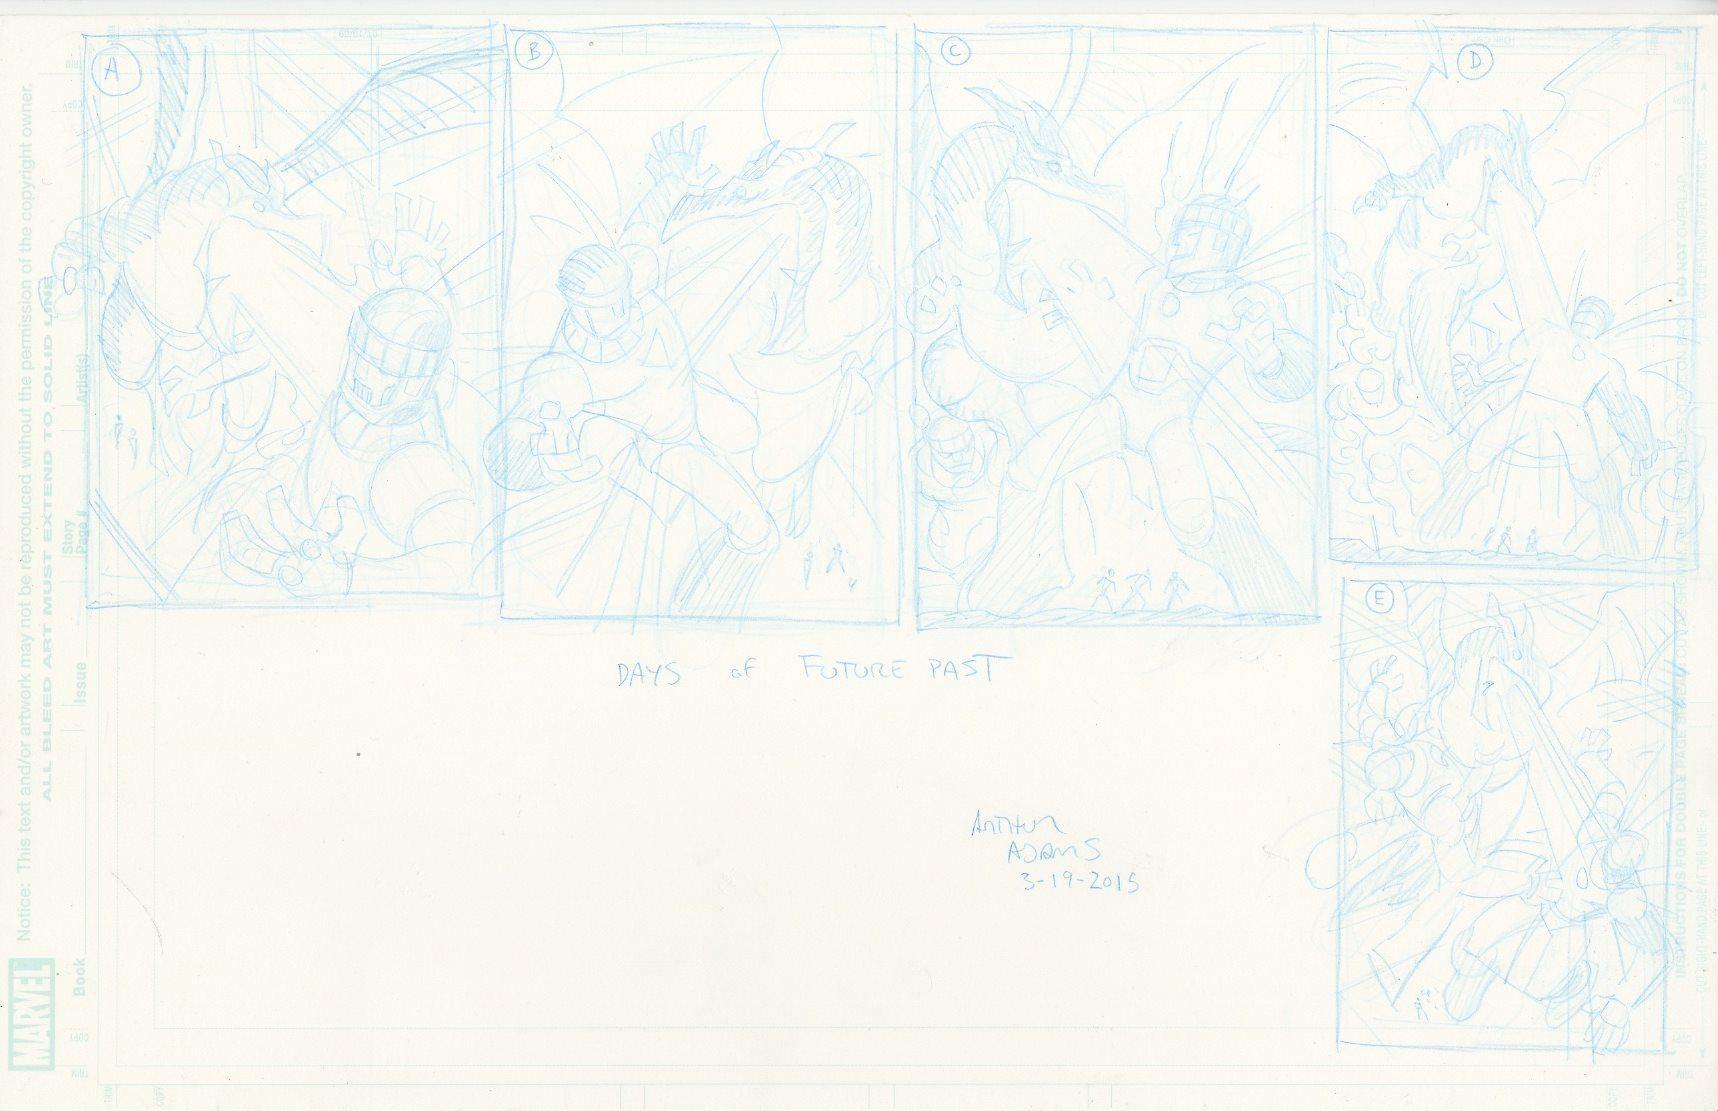 layout designs for X-Men: Days of Future Past by Arthur Adams